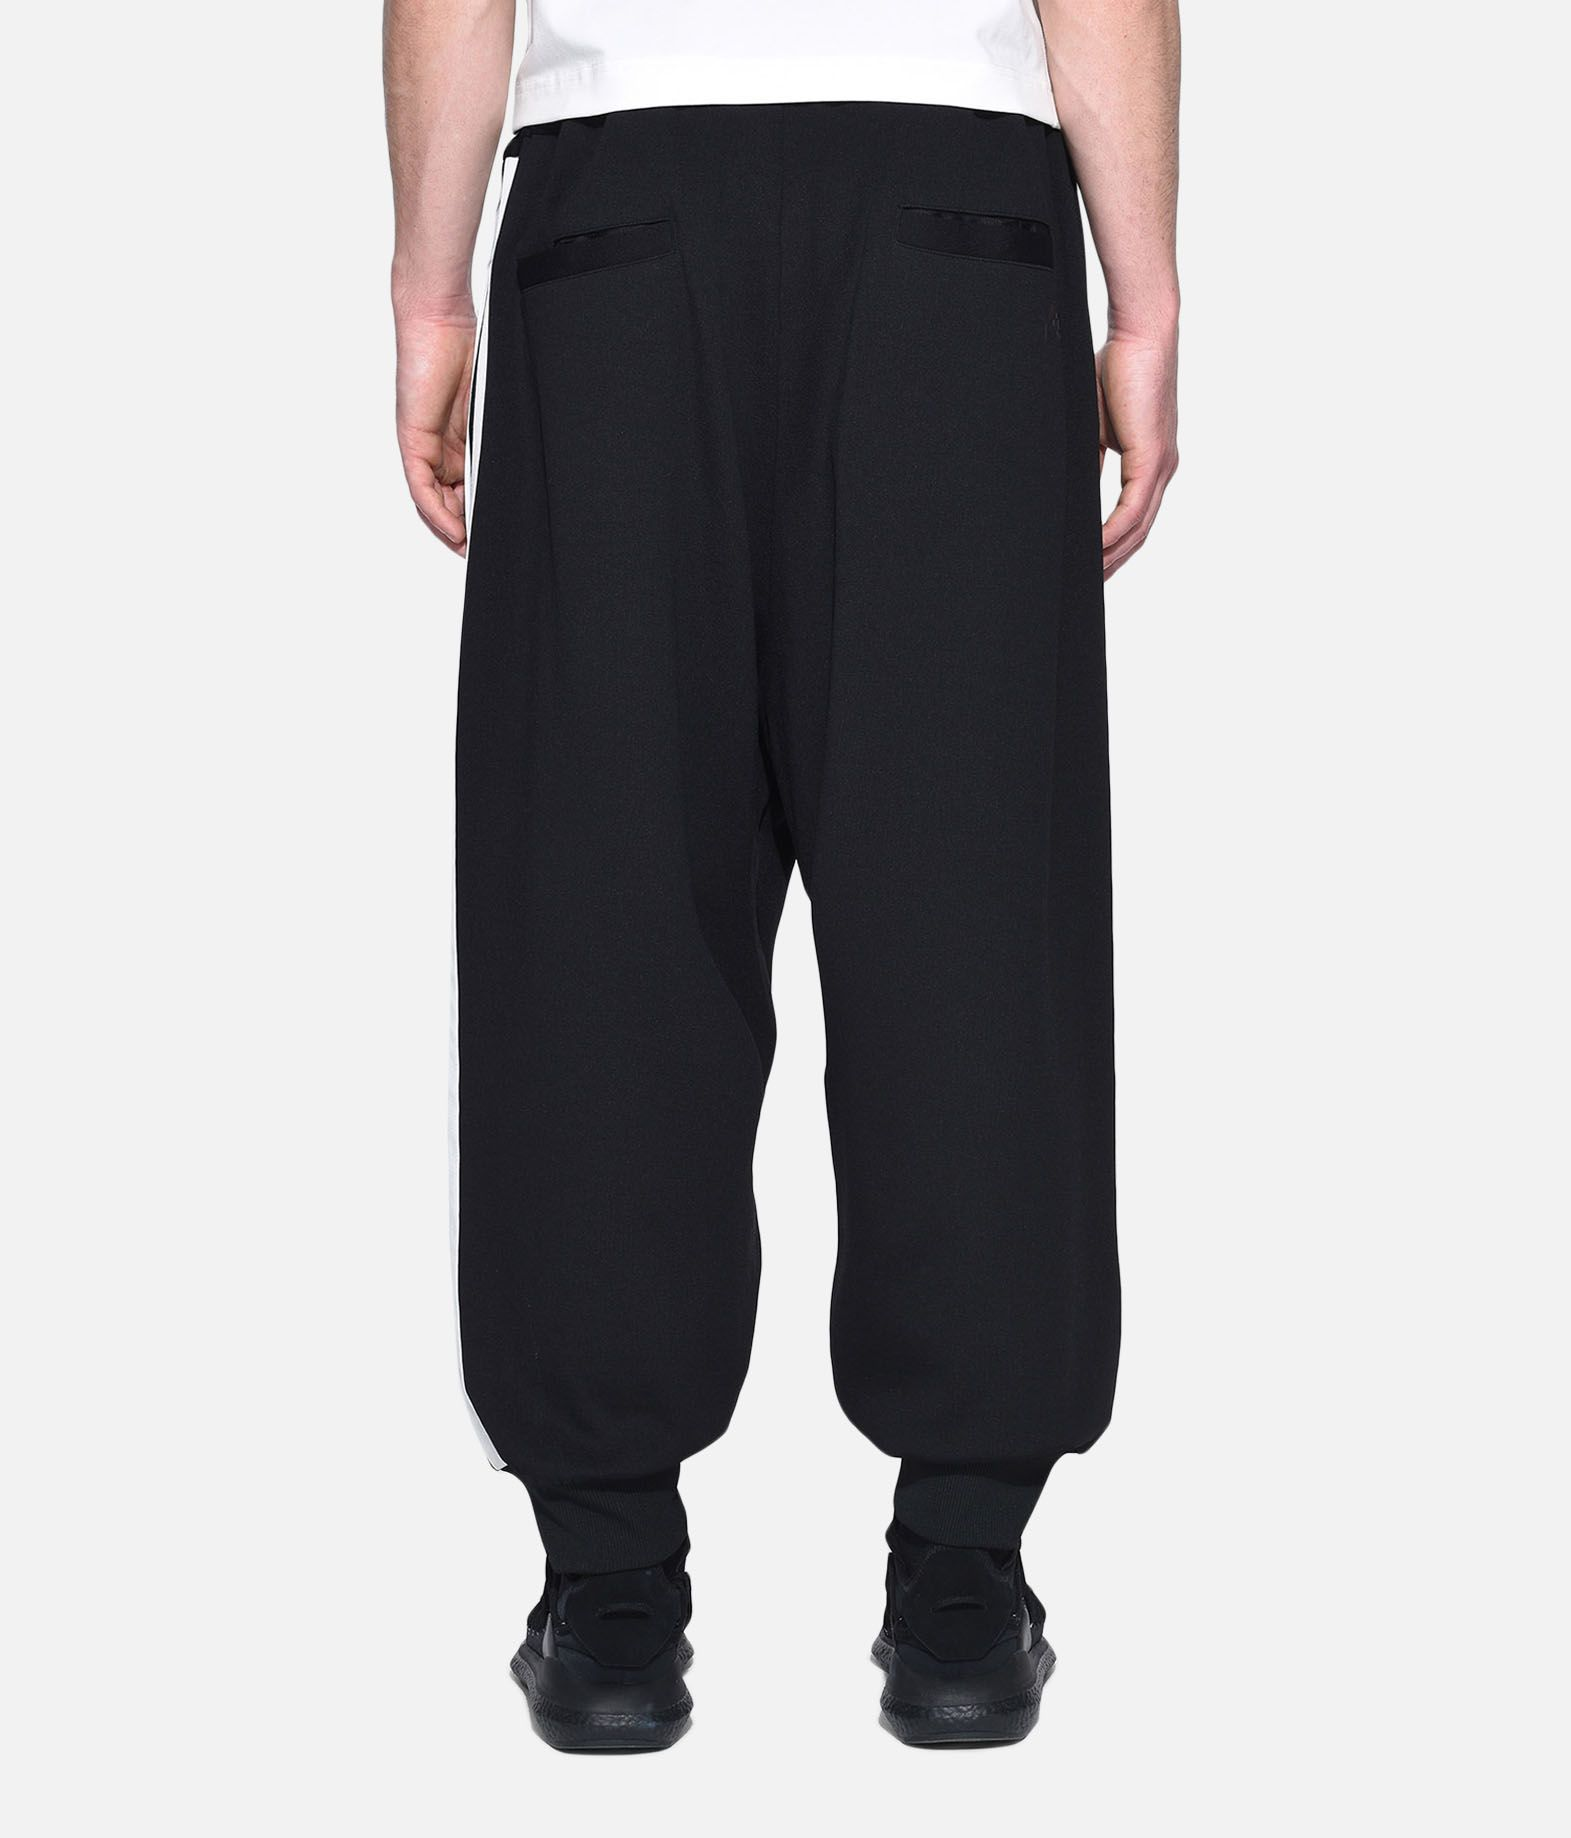 Y-3 Y-3 3-Stripes Selvedge Matte Track Pants Track pant Man d